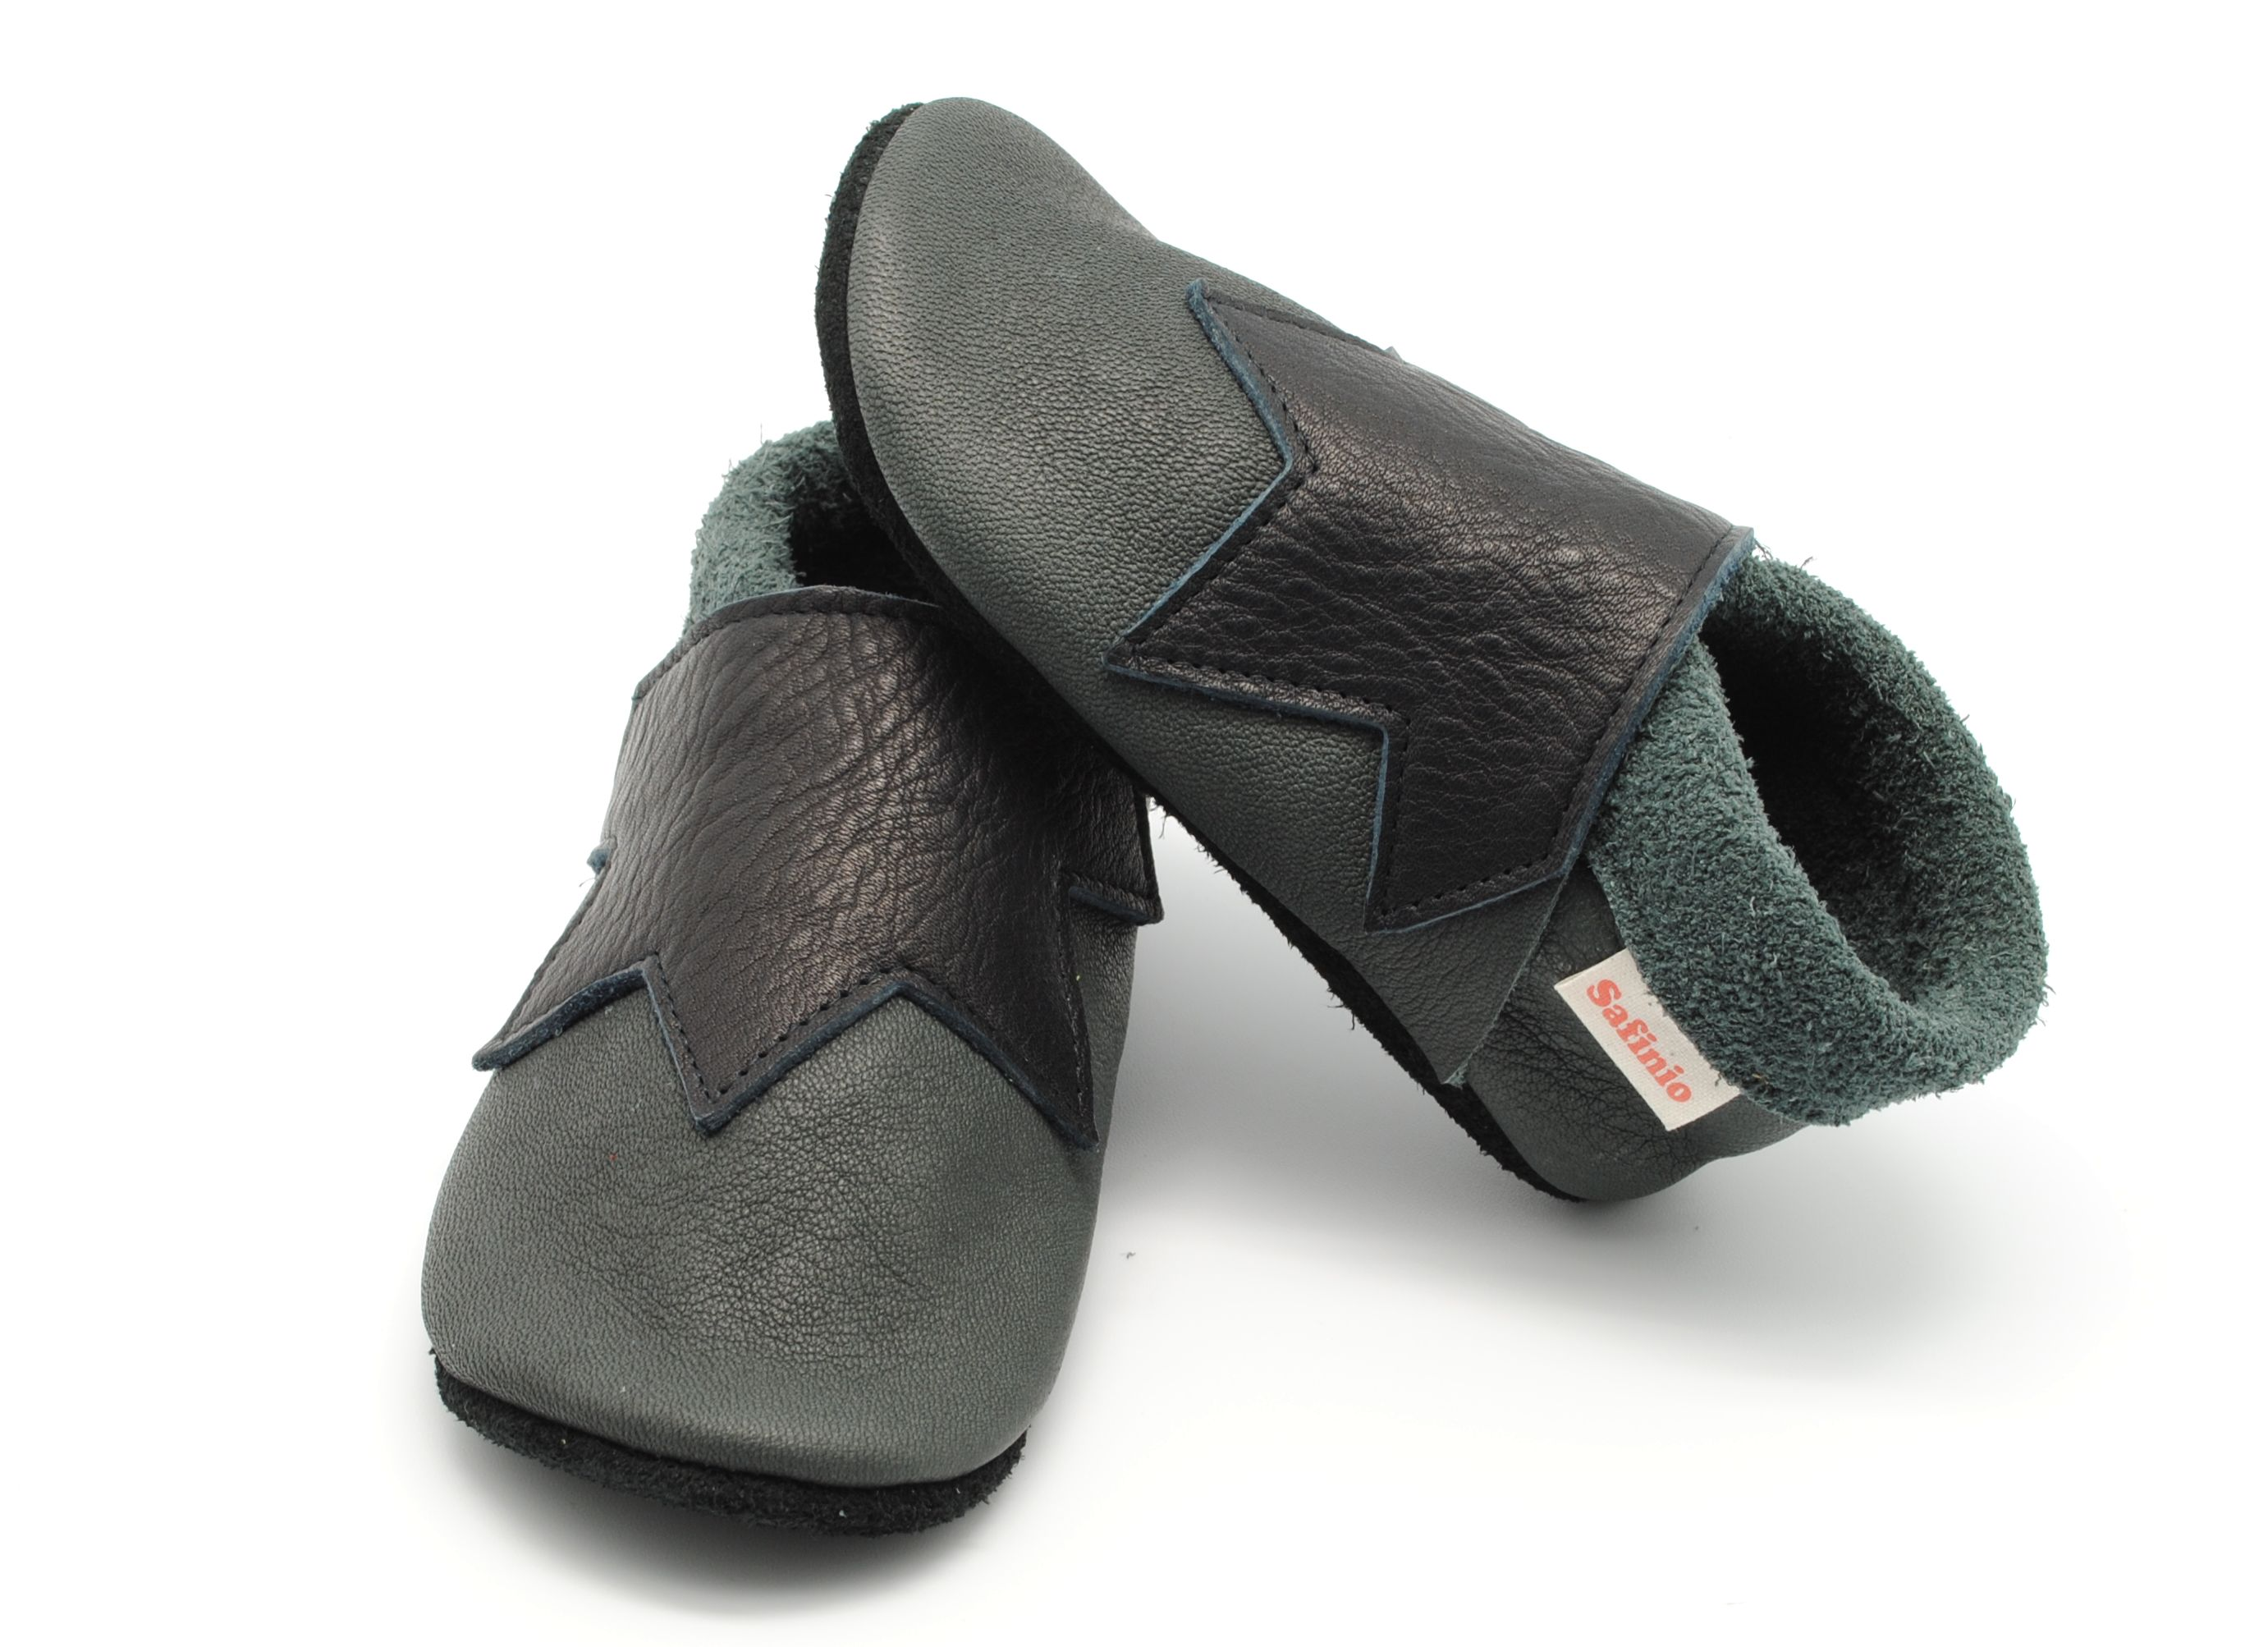 Baby shoes Babybooties ve able tanned leather Milestones